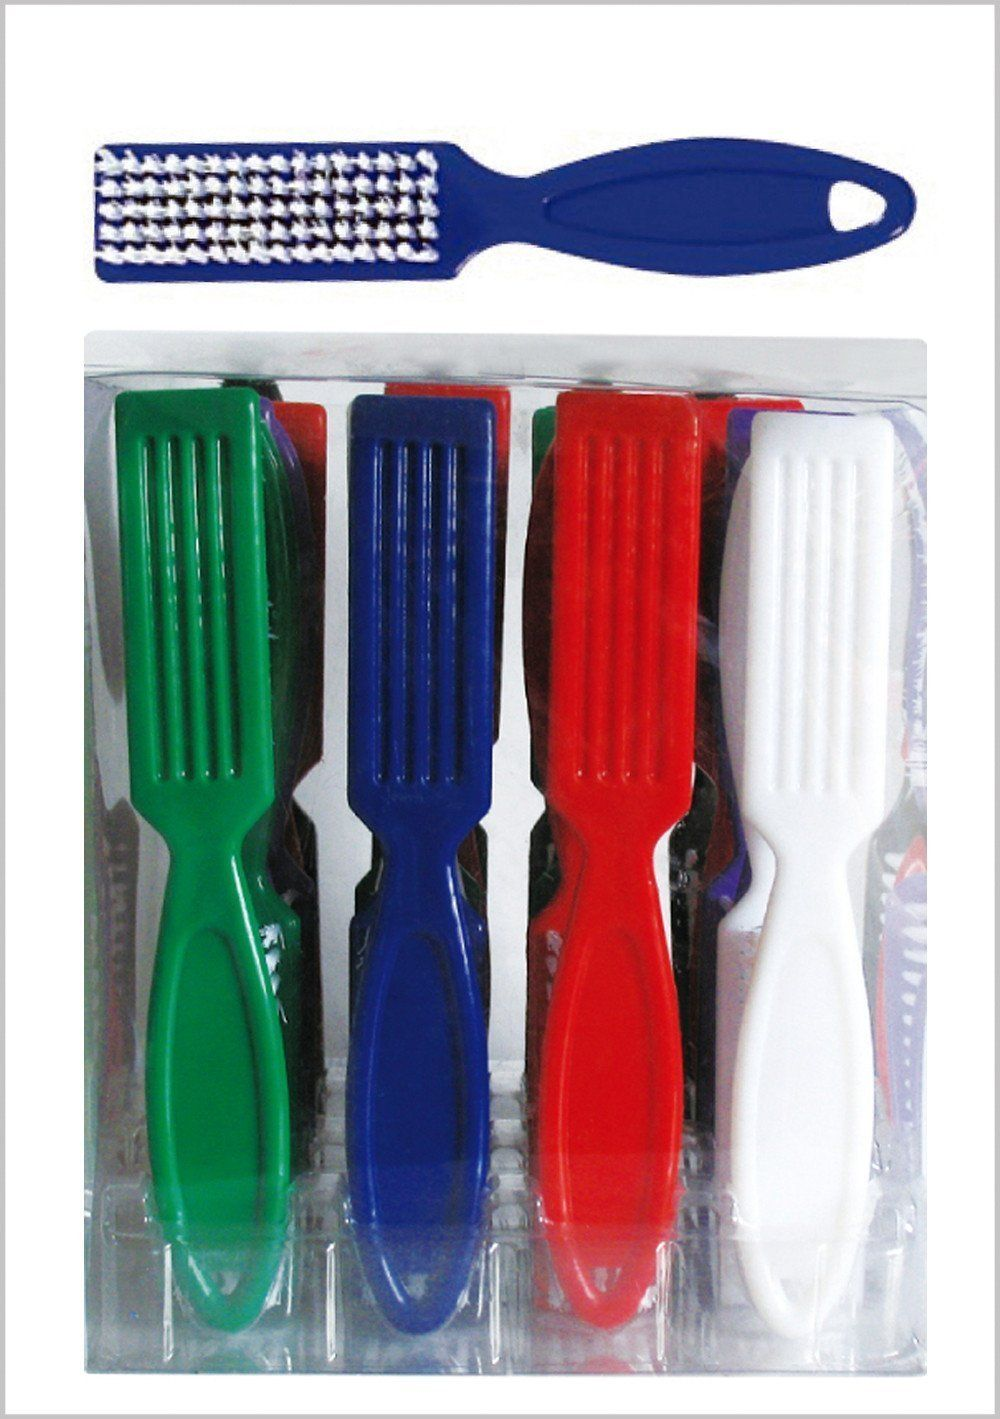 #63 Eden Assort Nail Brush (24Pc)